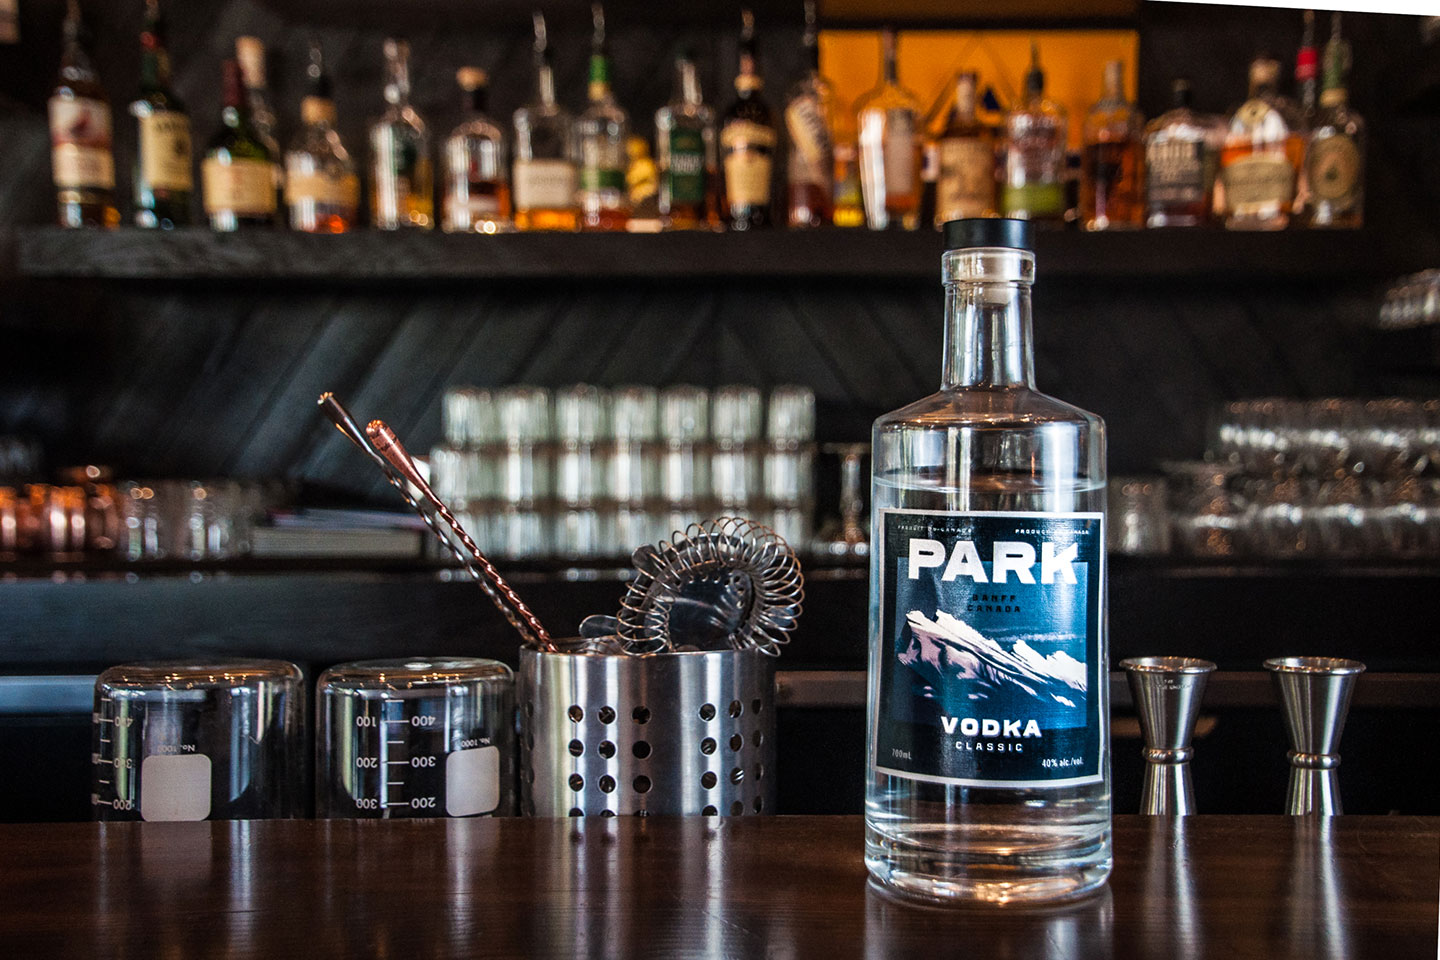 'Park Classic vodka' | Photo credit: Anna Robi